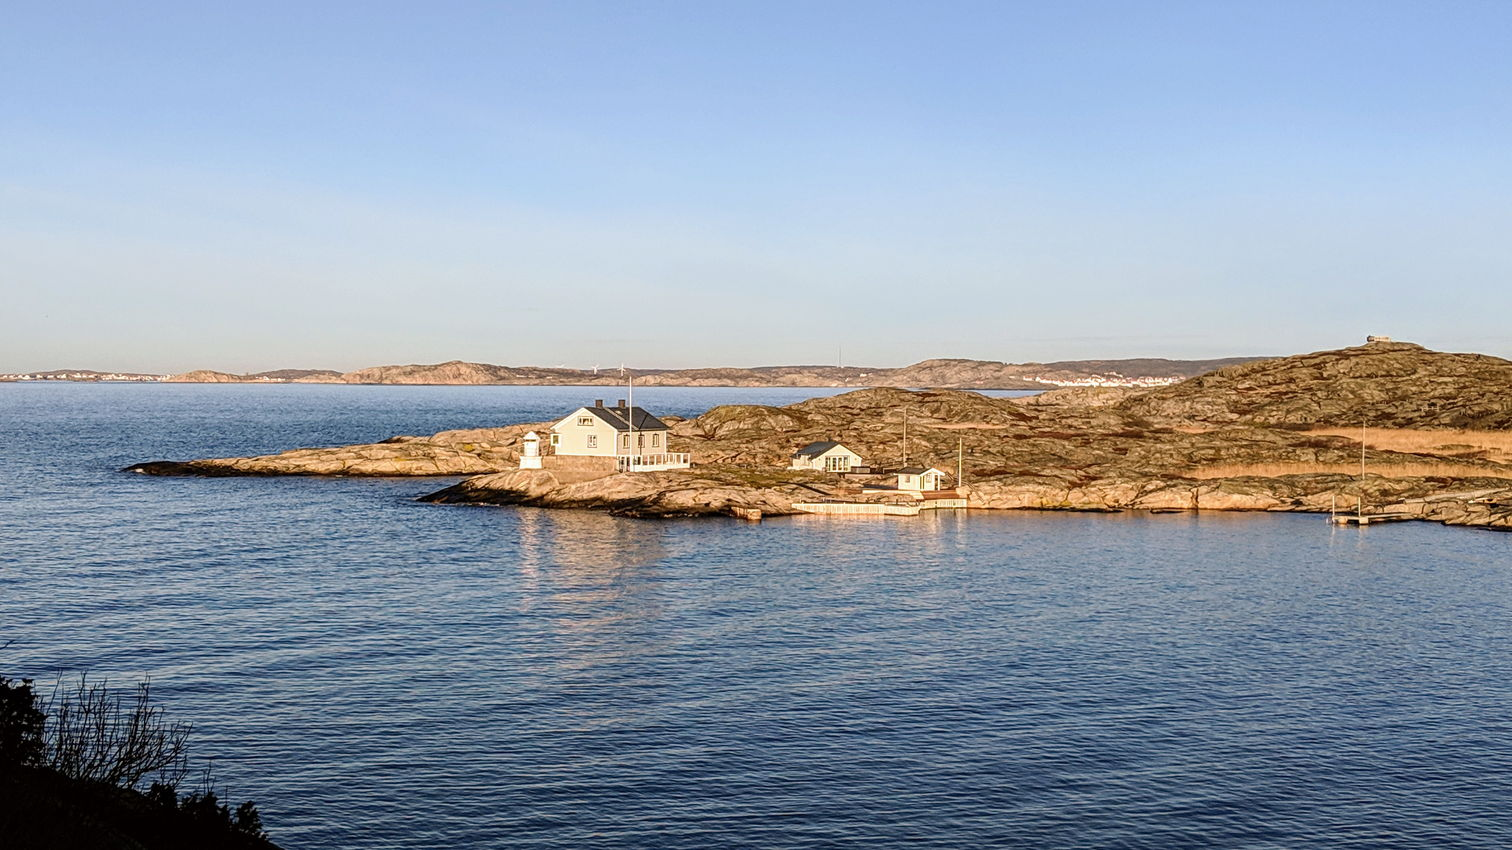 Coastline at Marstrand